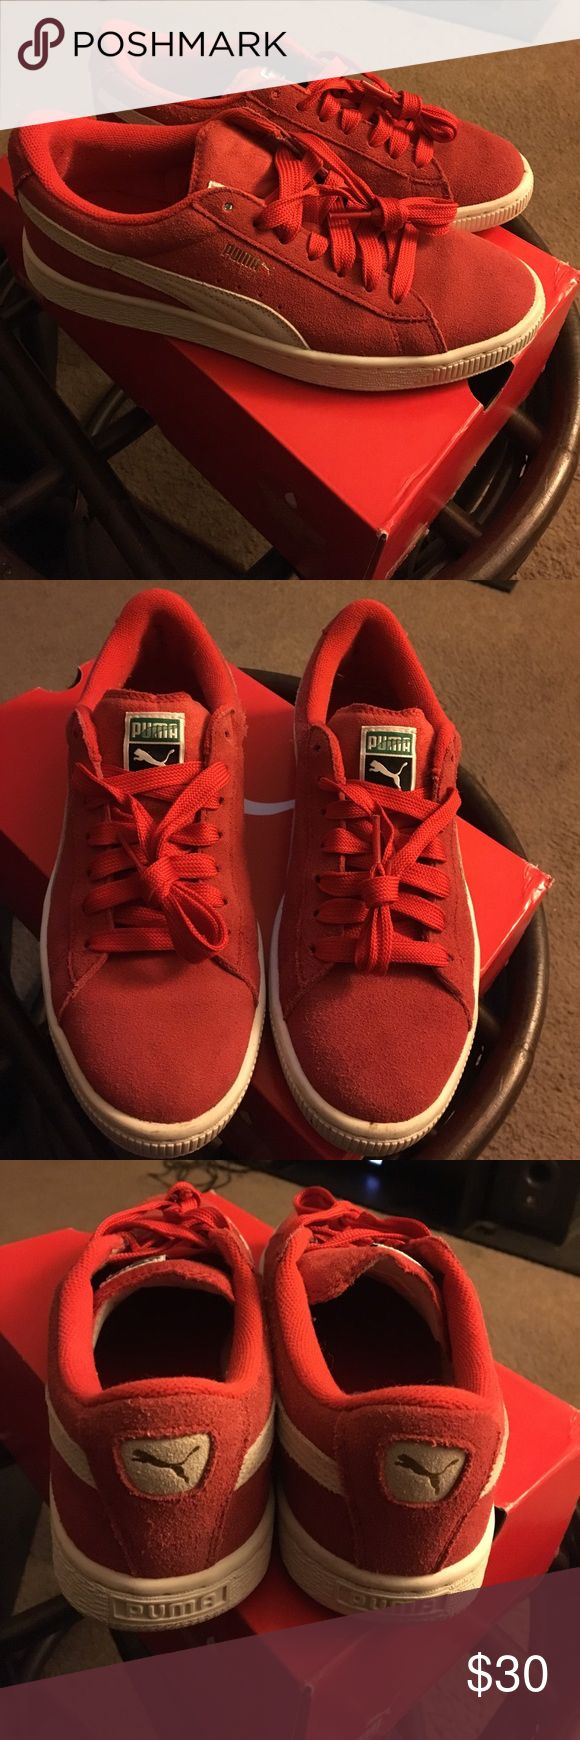 Puma Suede Puma Classic Pune Suede. Worn twice. Comes with box, red laces and white laces. Puma Shoes Sneakers